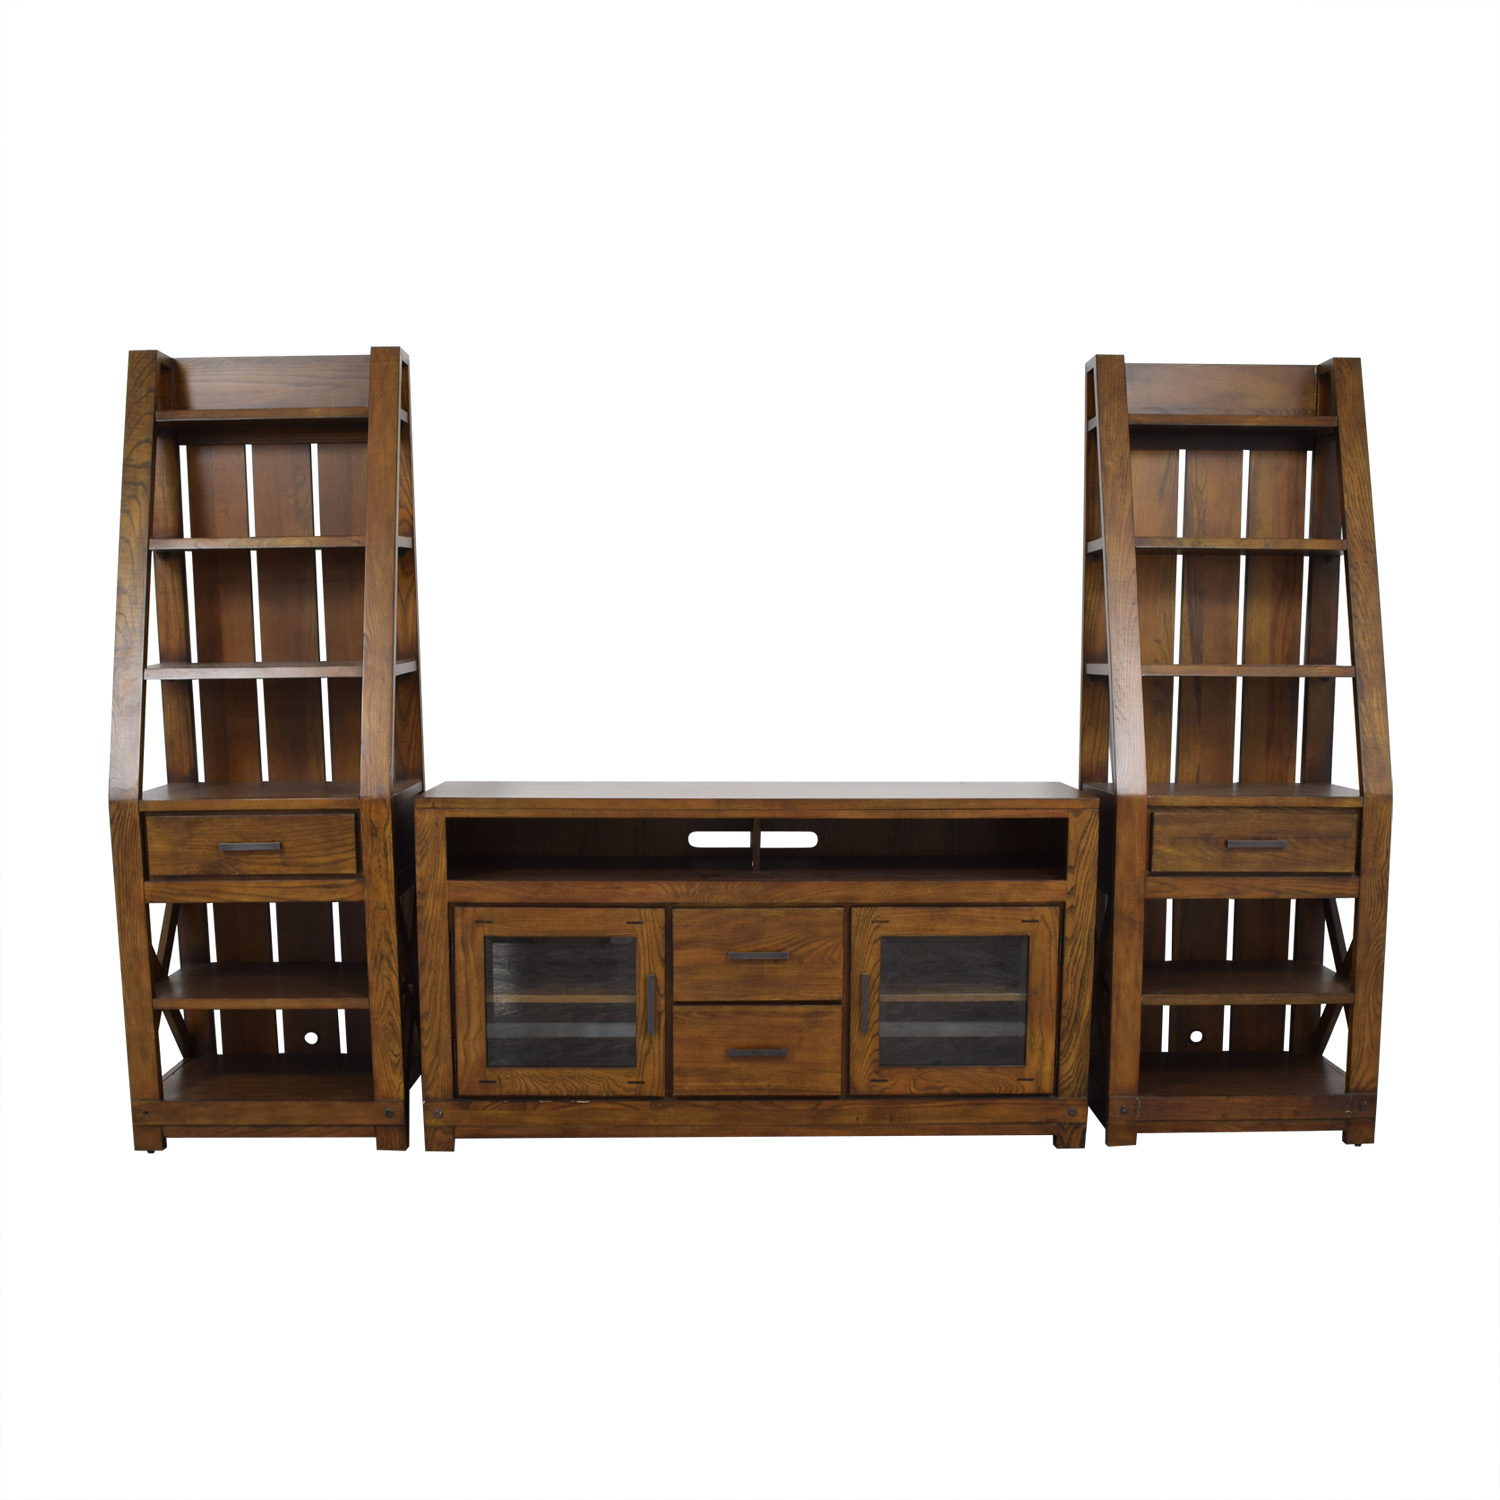 Raymour and Flanigan Wood Wall Unit with Shelves / Media Units